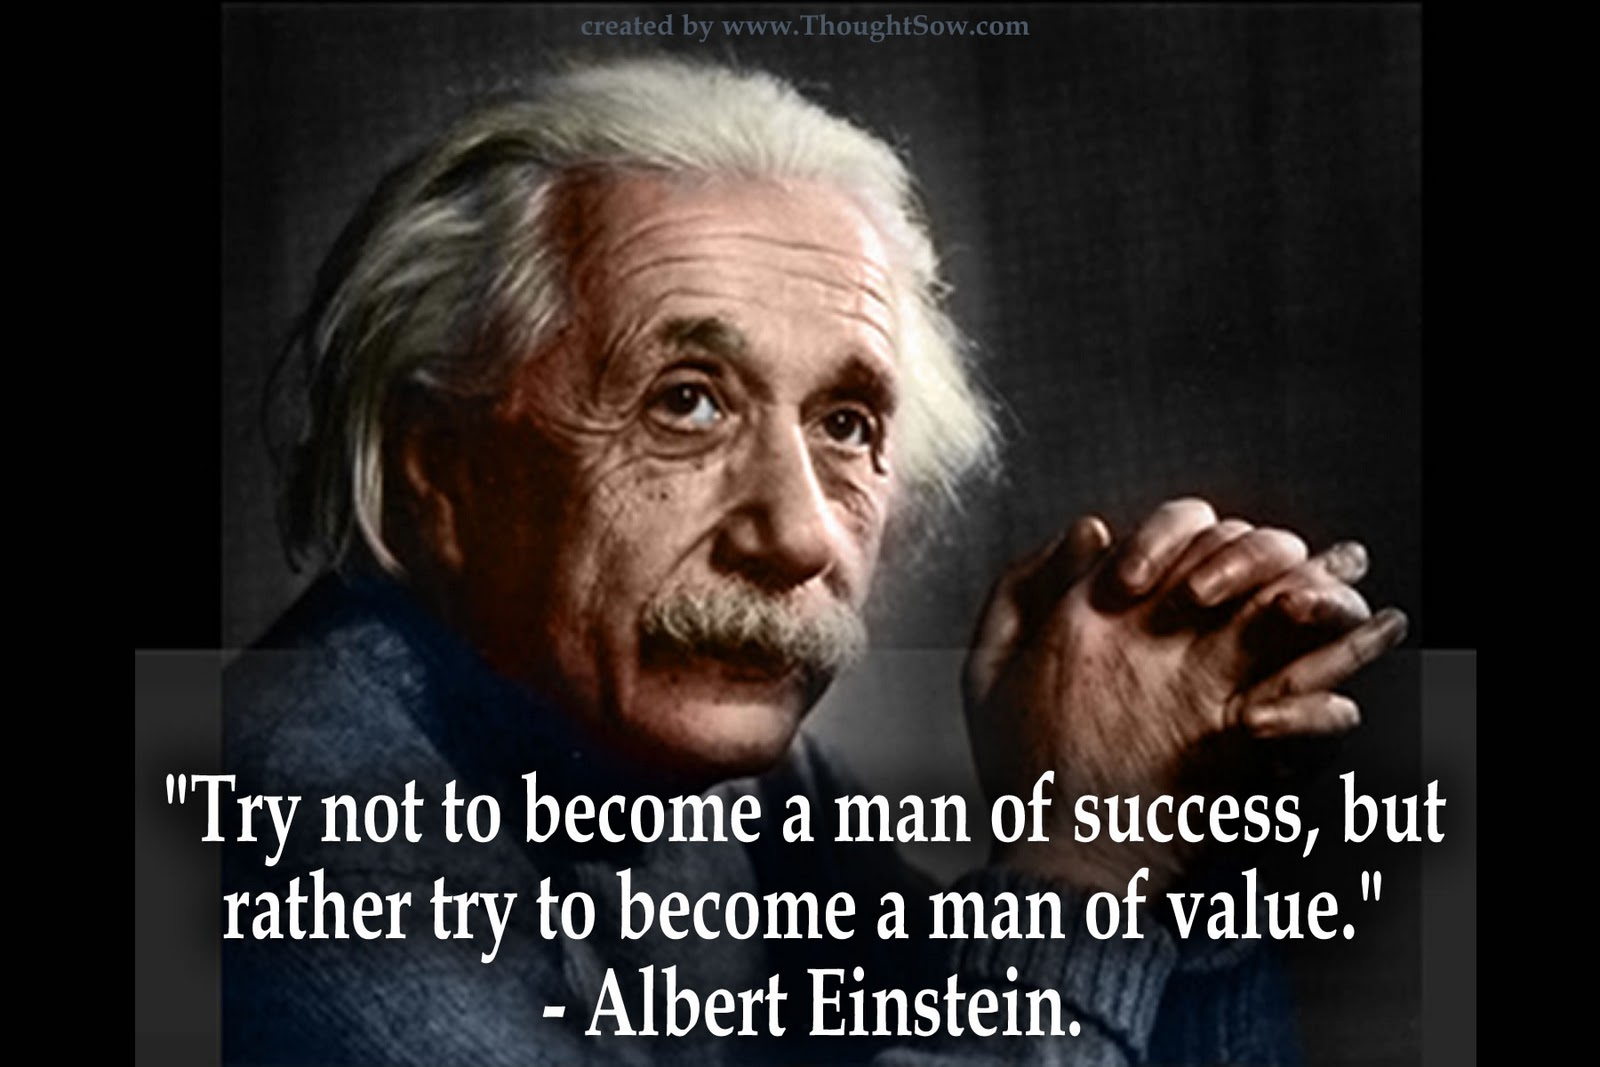 albert einstein success value large Albert Einstein